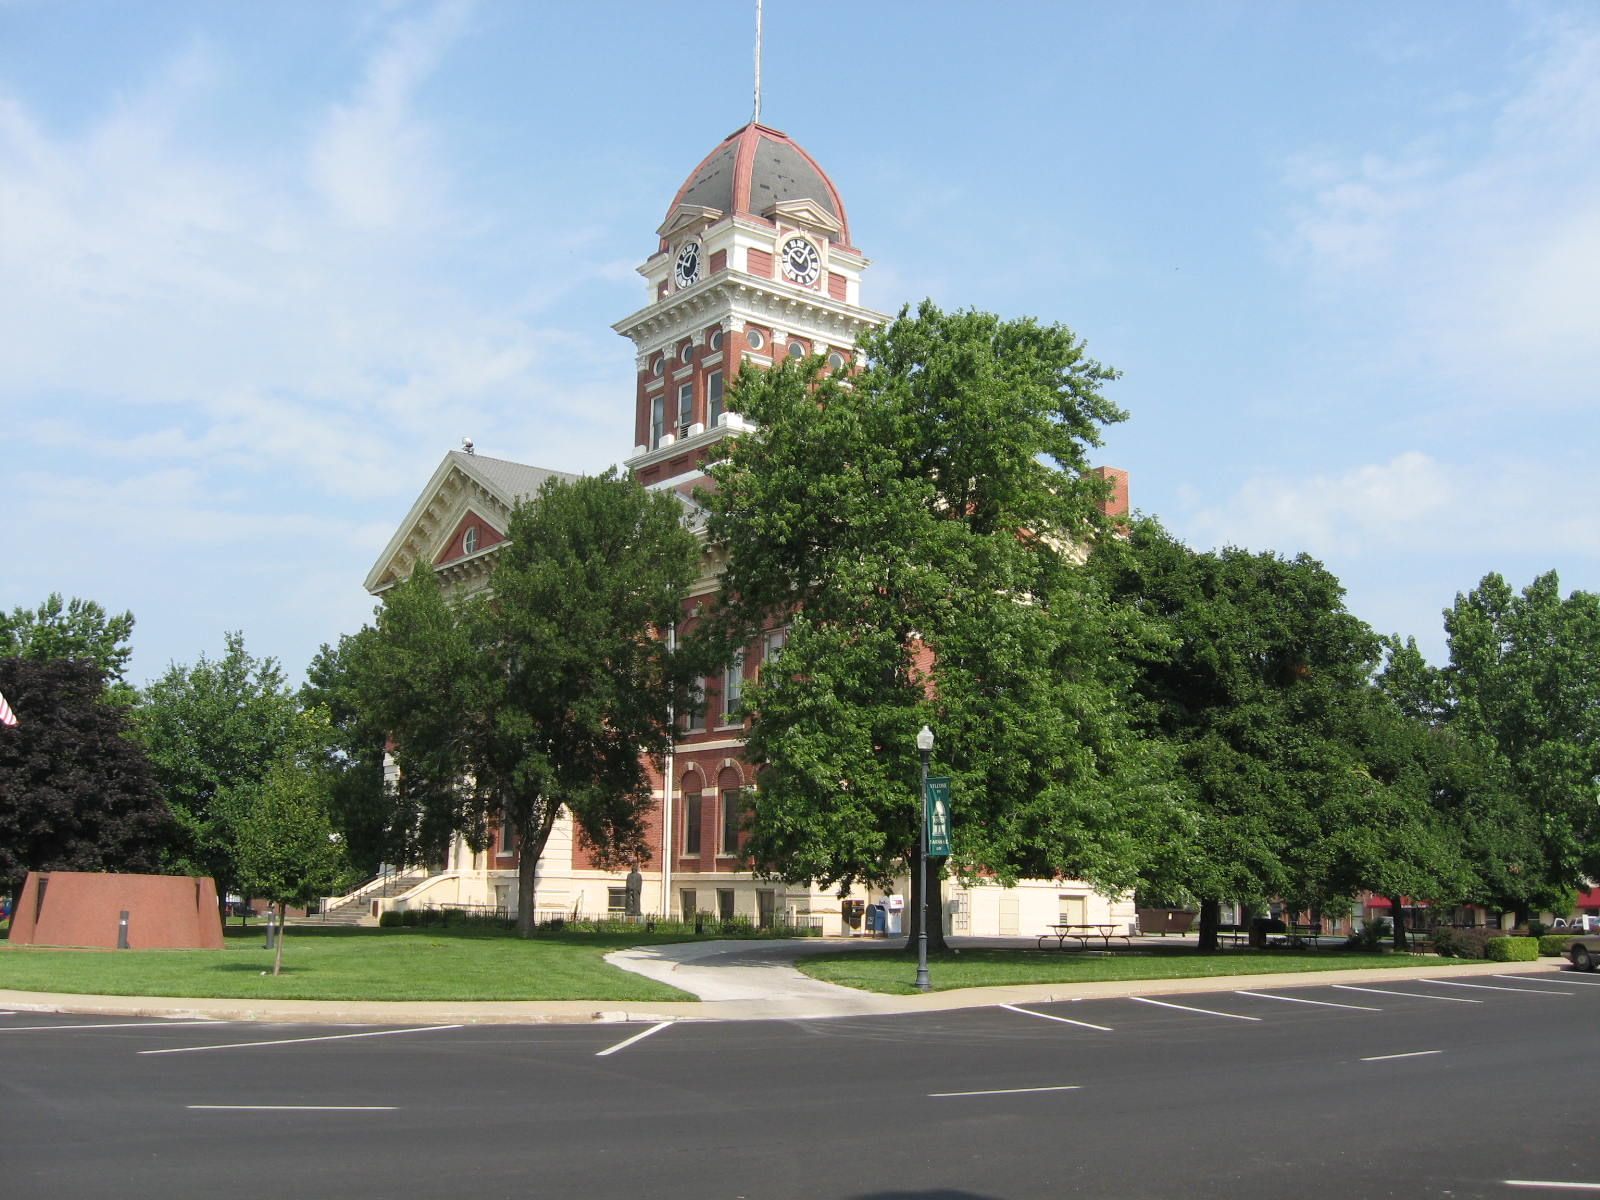 the Courthouse at Marshall